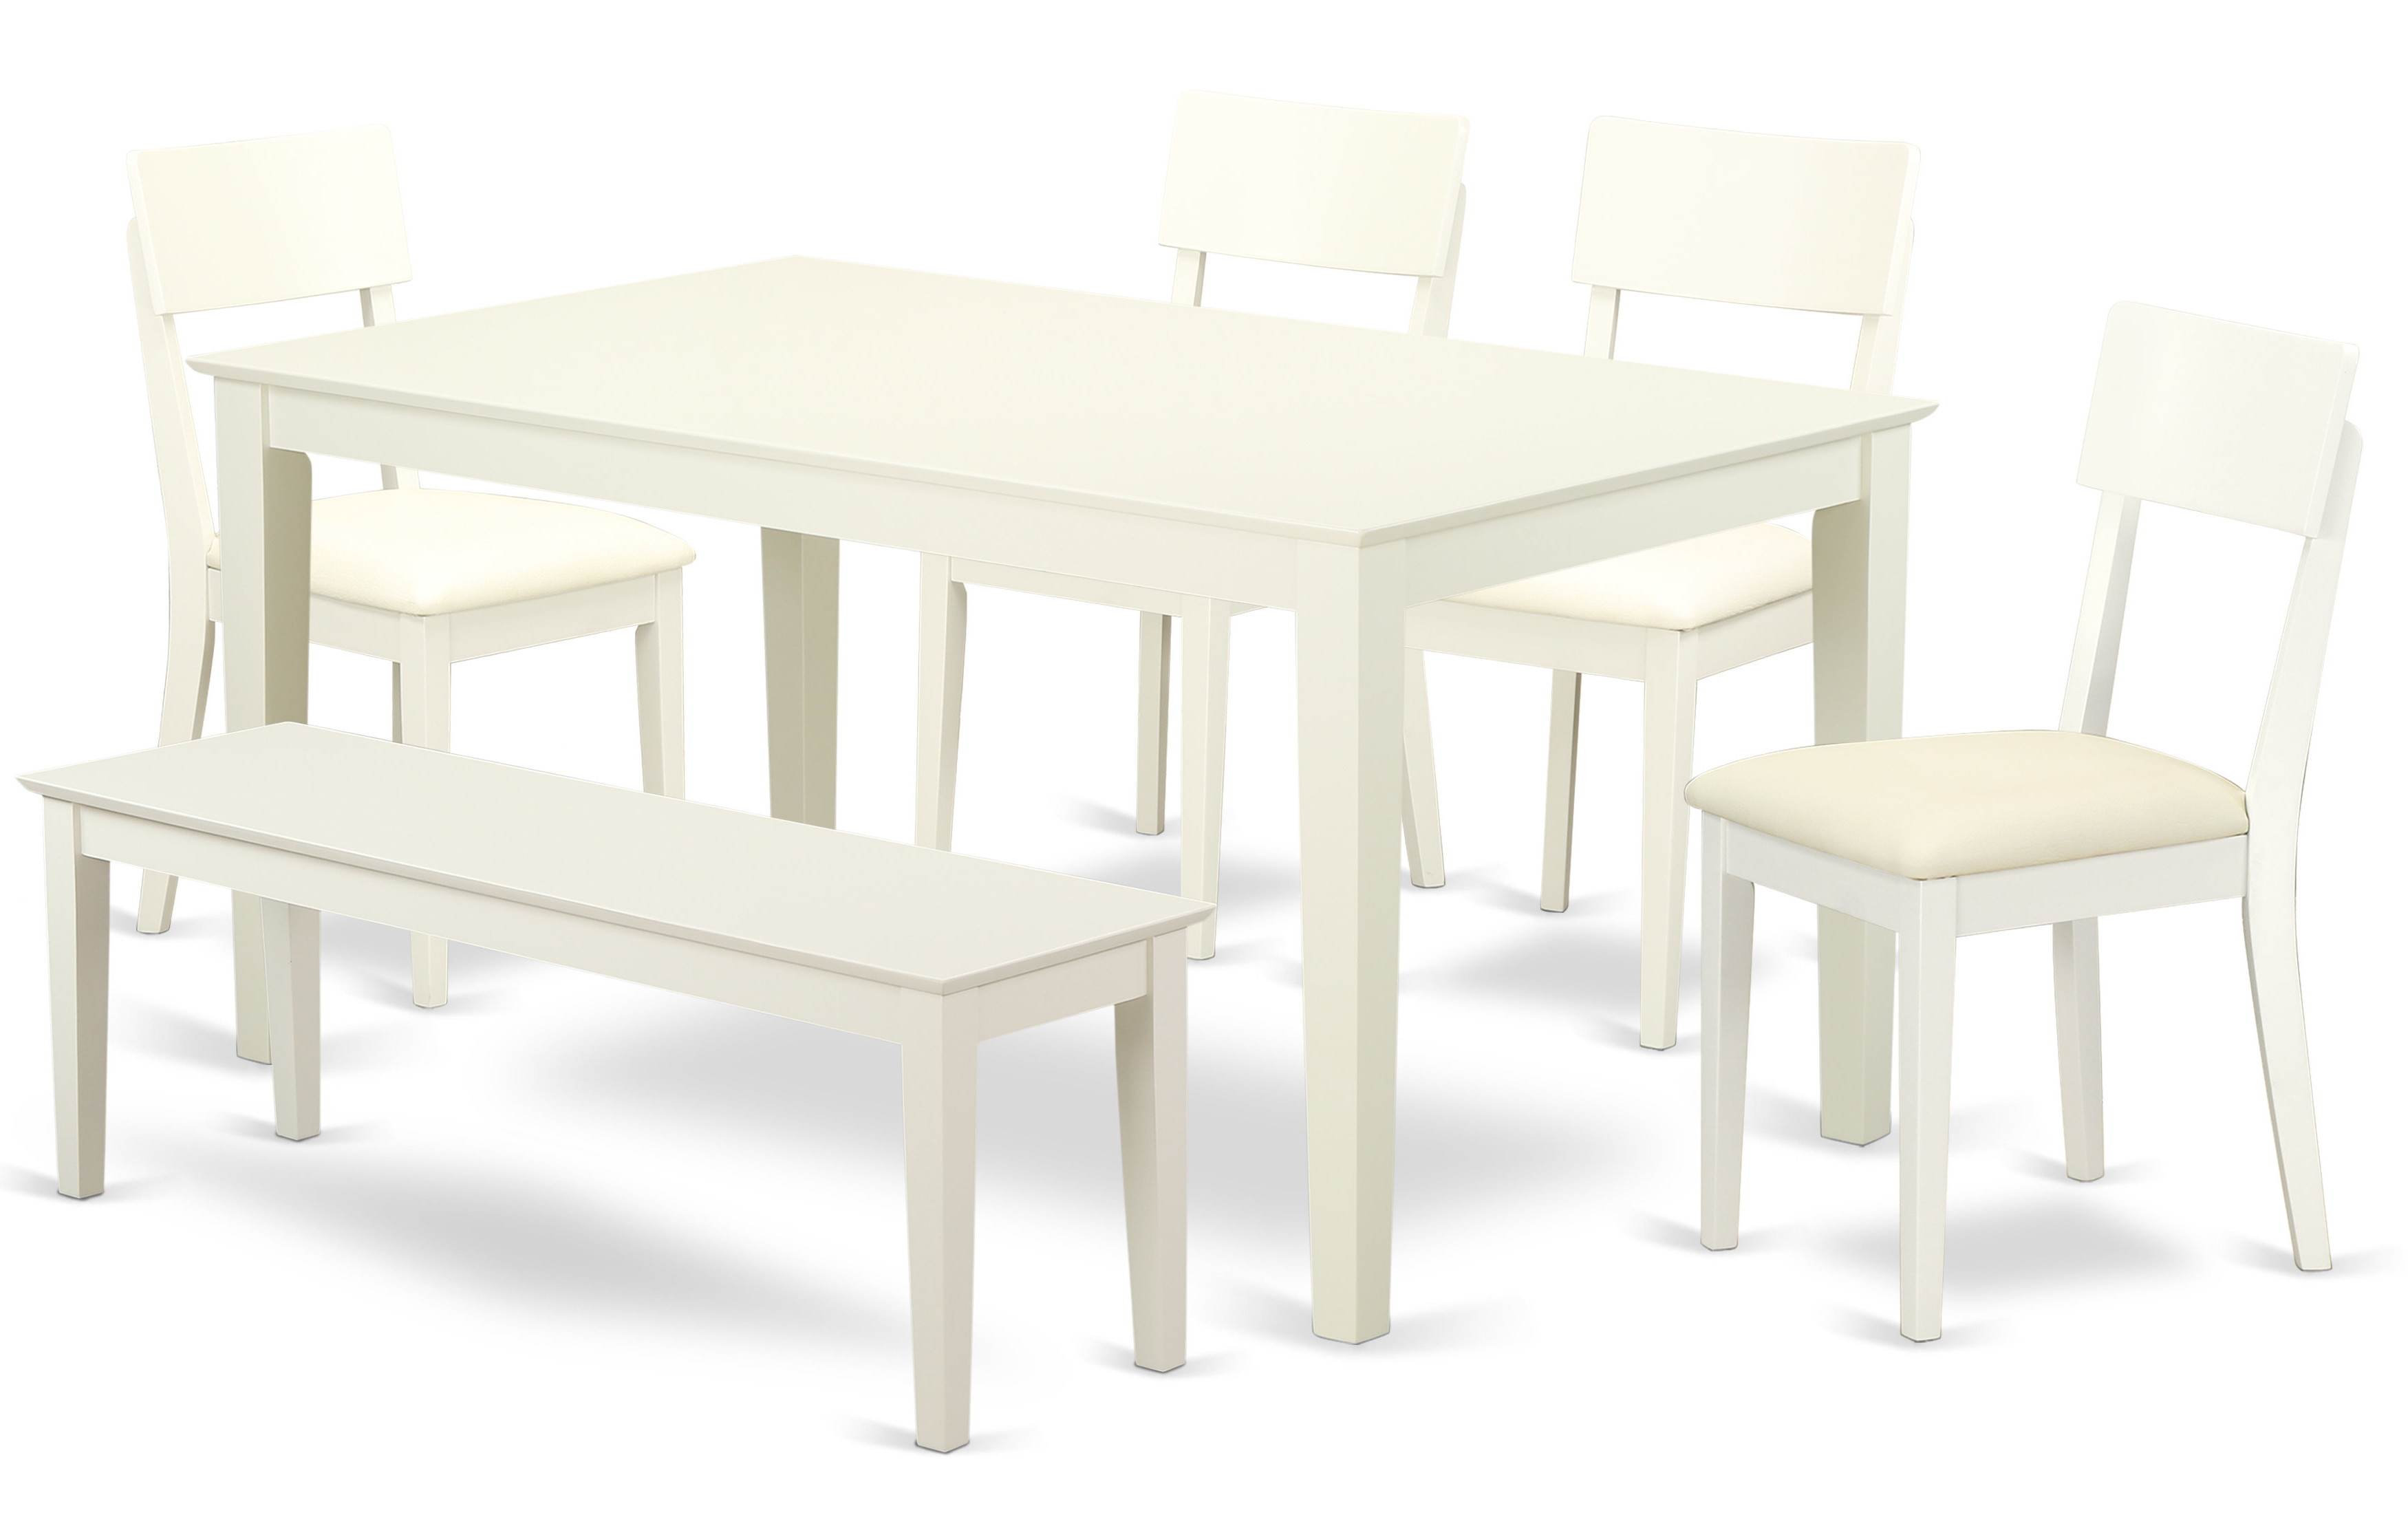 Wayfair Throughout Most Popular Smyrna 3 Piece Dining Sets (View 7 of 25)